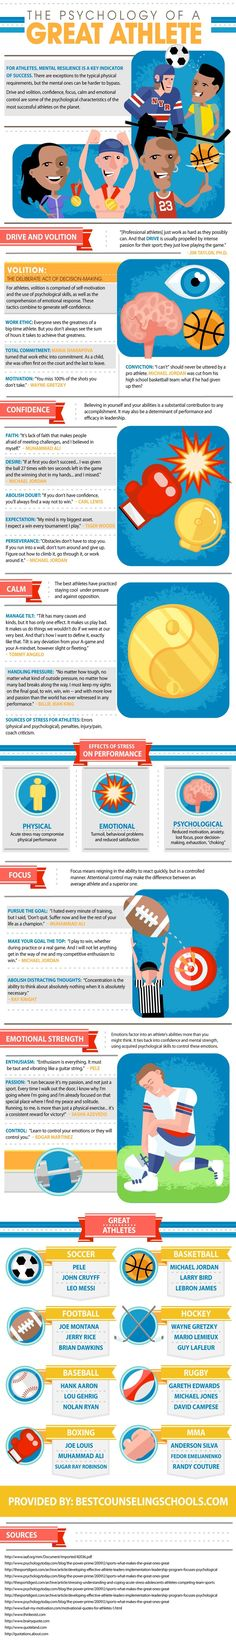 Loveinfographics.com » Submit & share infographics – Infographics Community » The Psychology of a Great Athlete